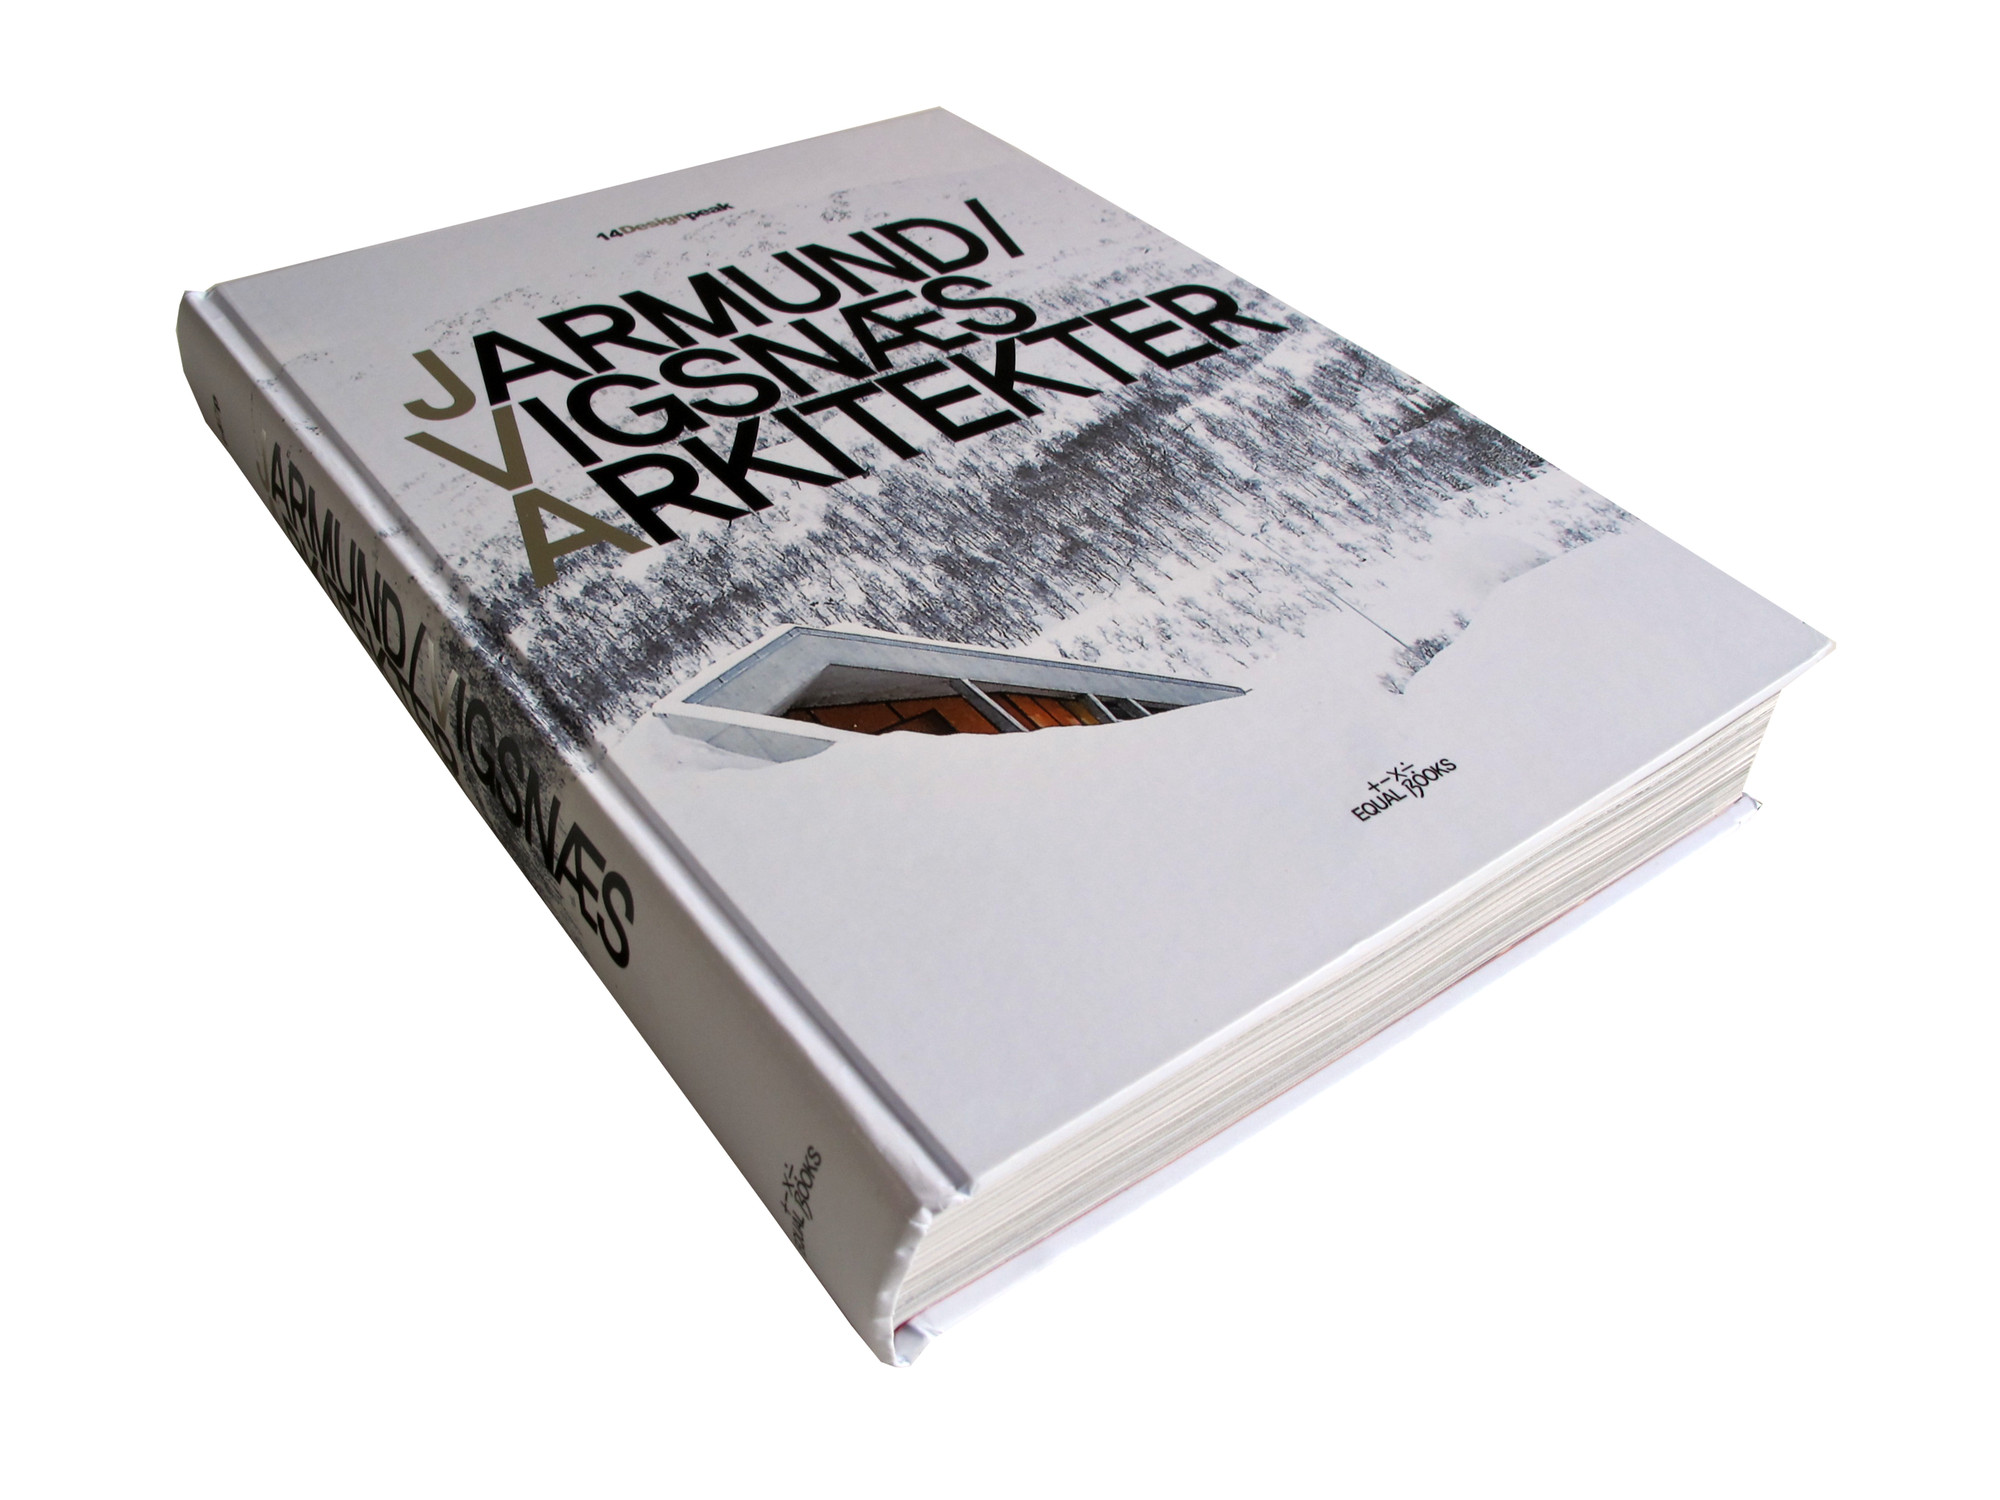 Jarmund / Vigsnæs Arkitekter, Courtesy of Equal Books